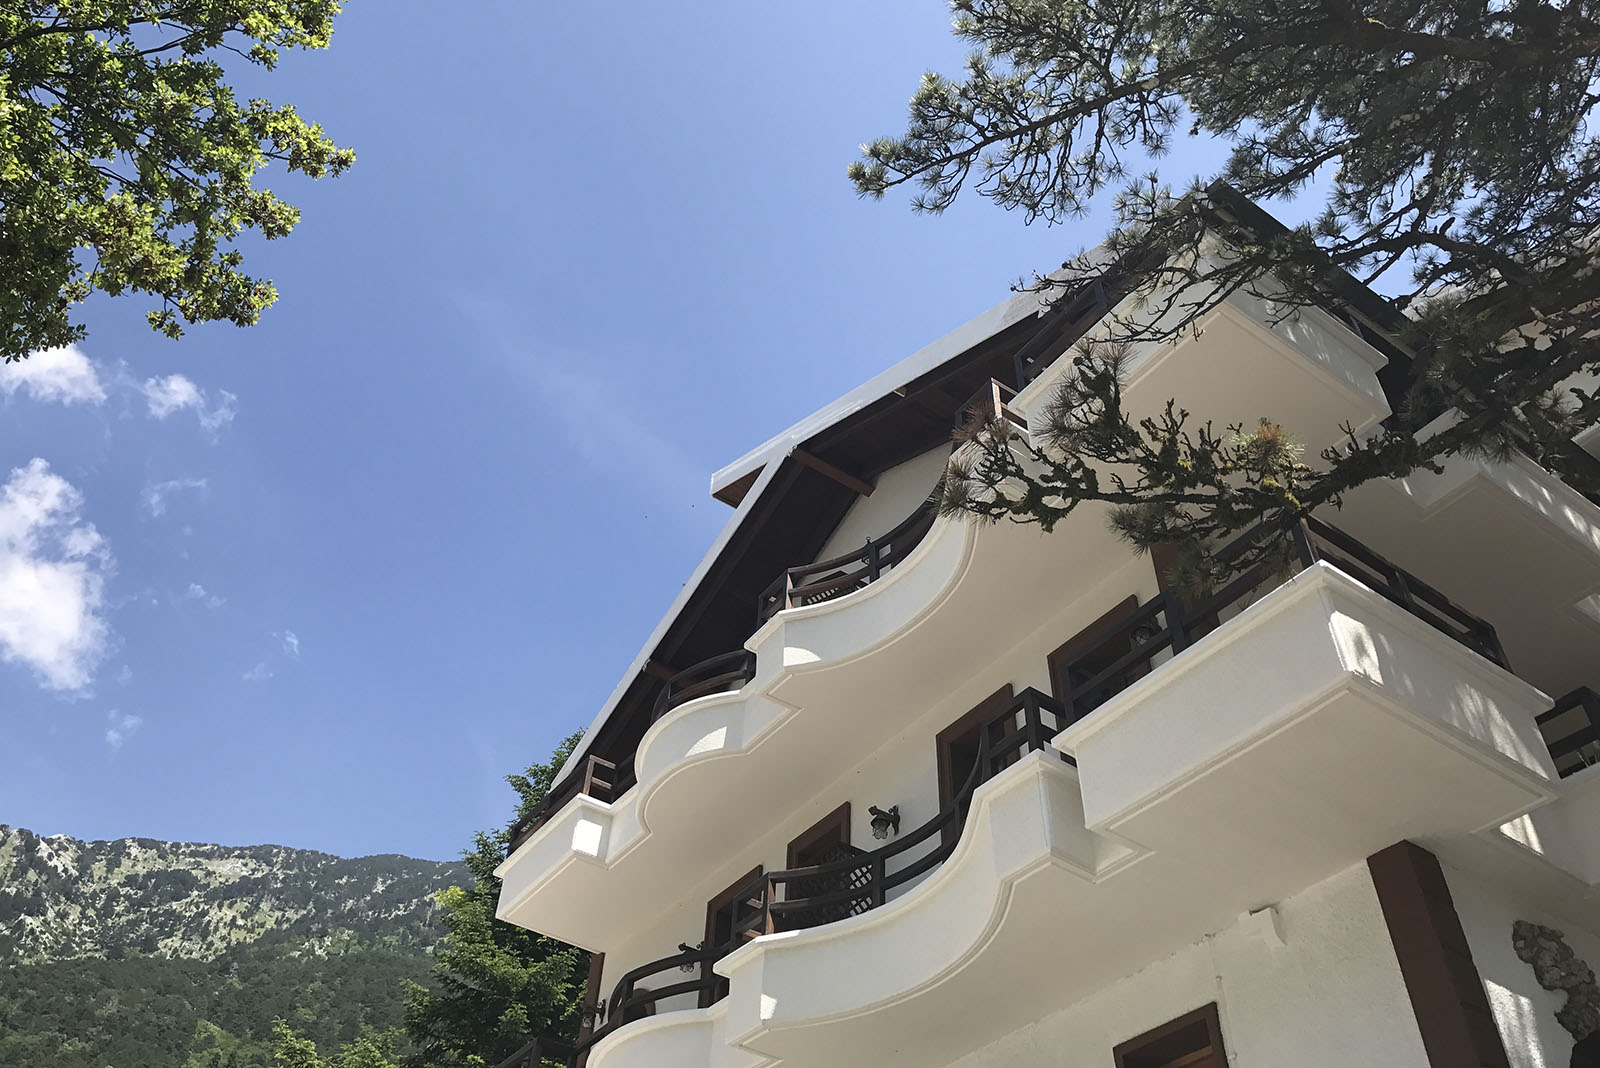 Hotel-in-Llogara-National-Park-1600